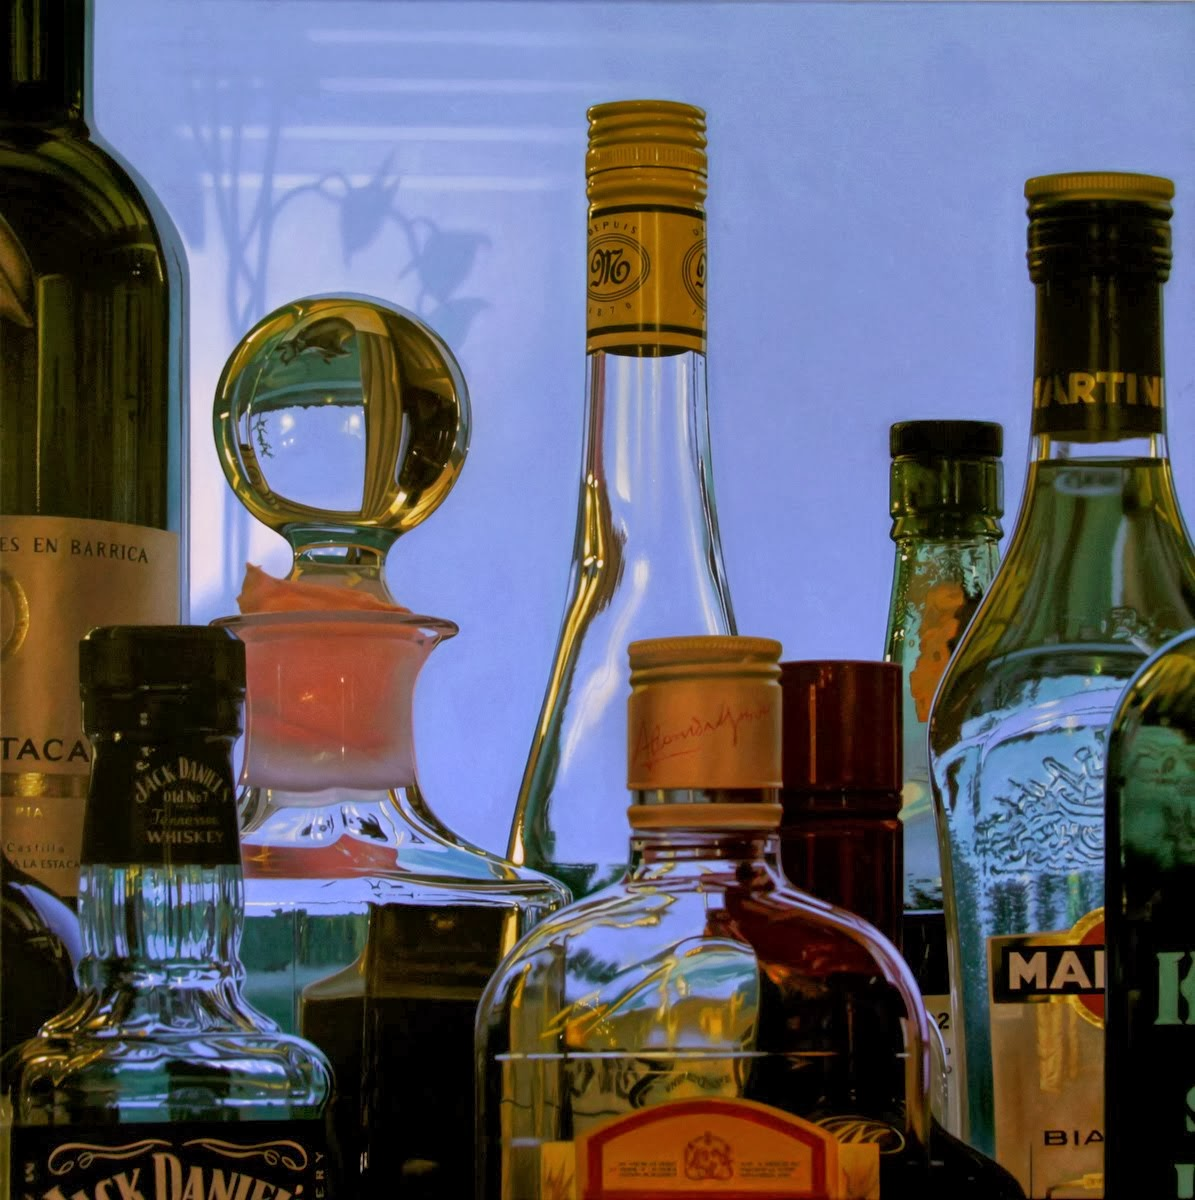 08-Spirits-Of-Oisterwijk-Photo-Realistic-Reflection-Paintings-www-designstack-co